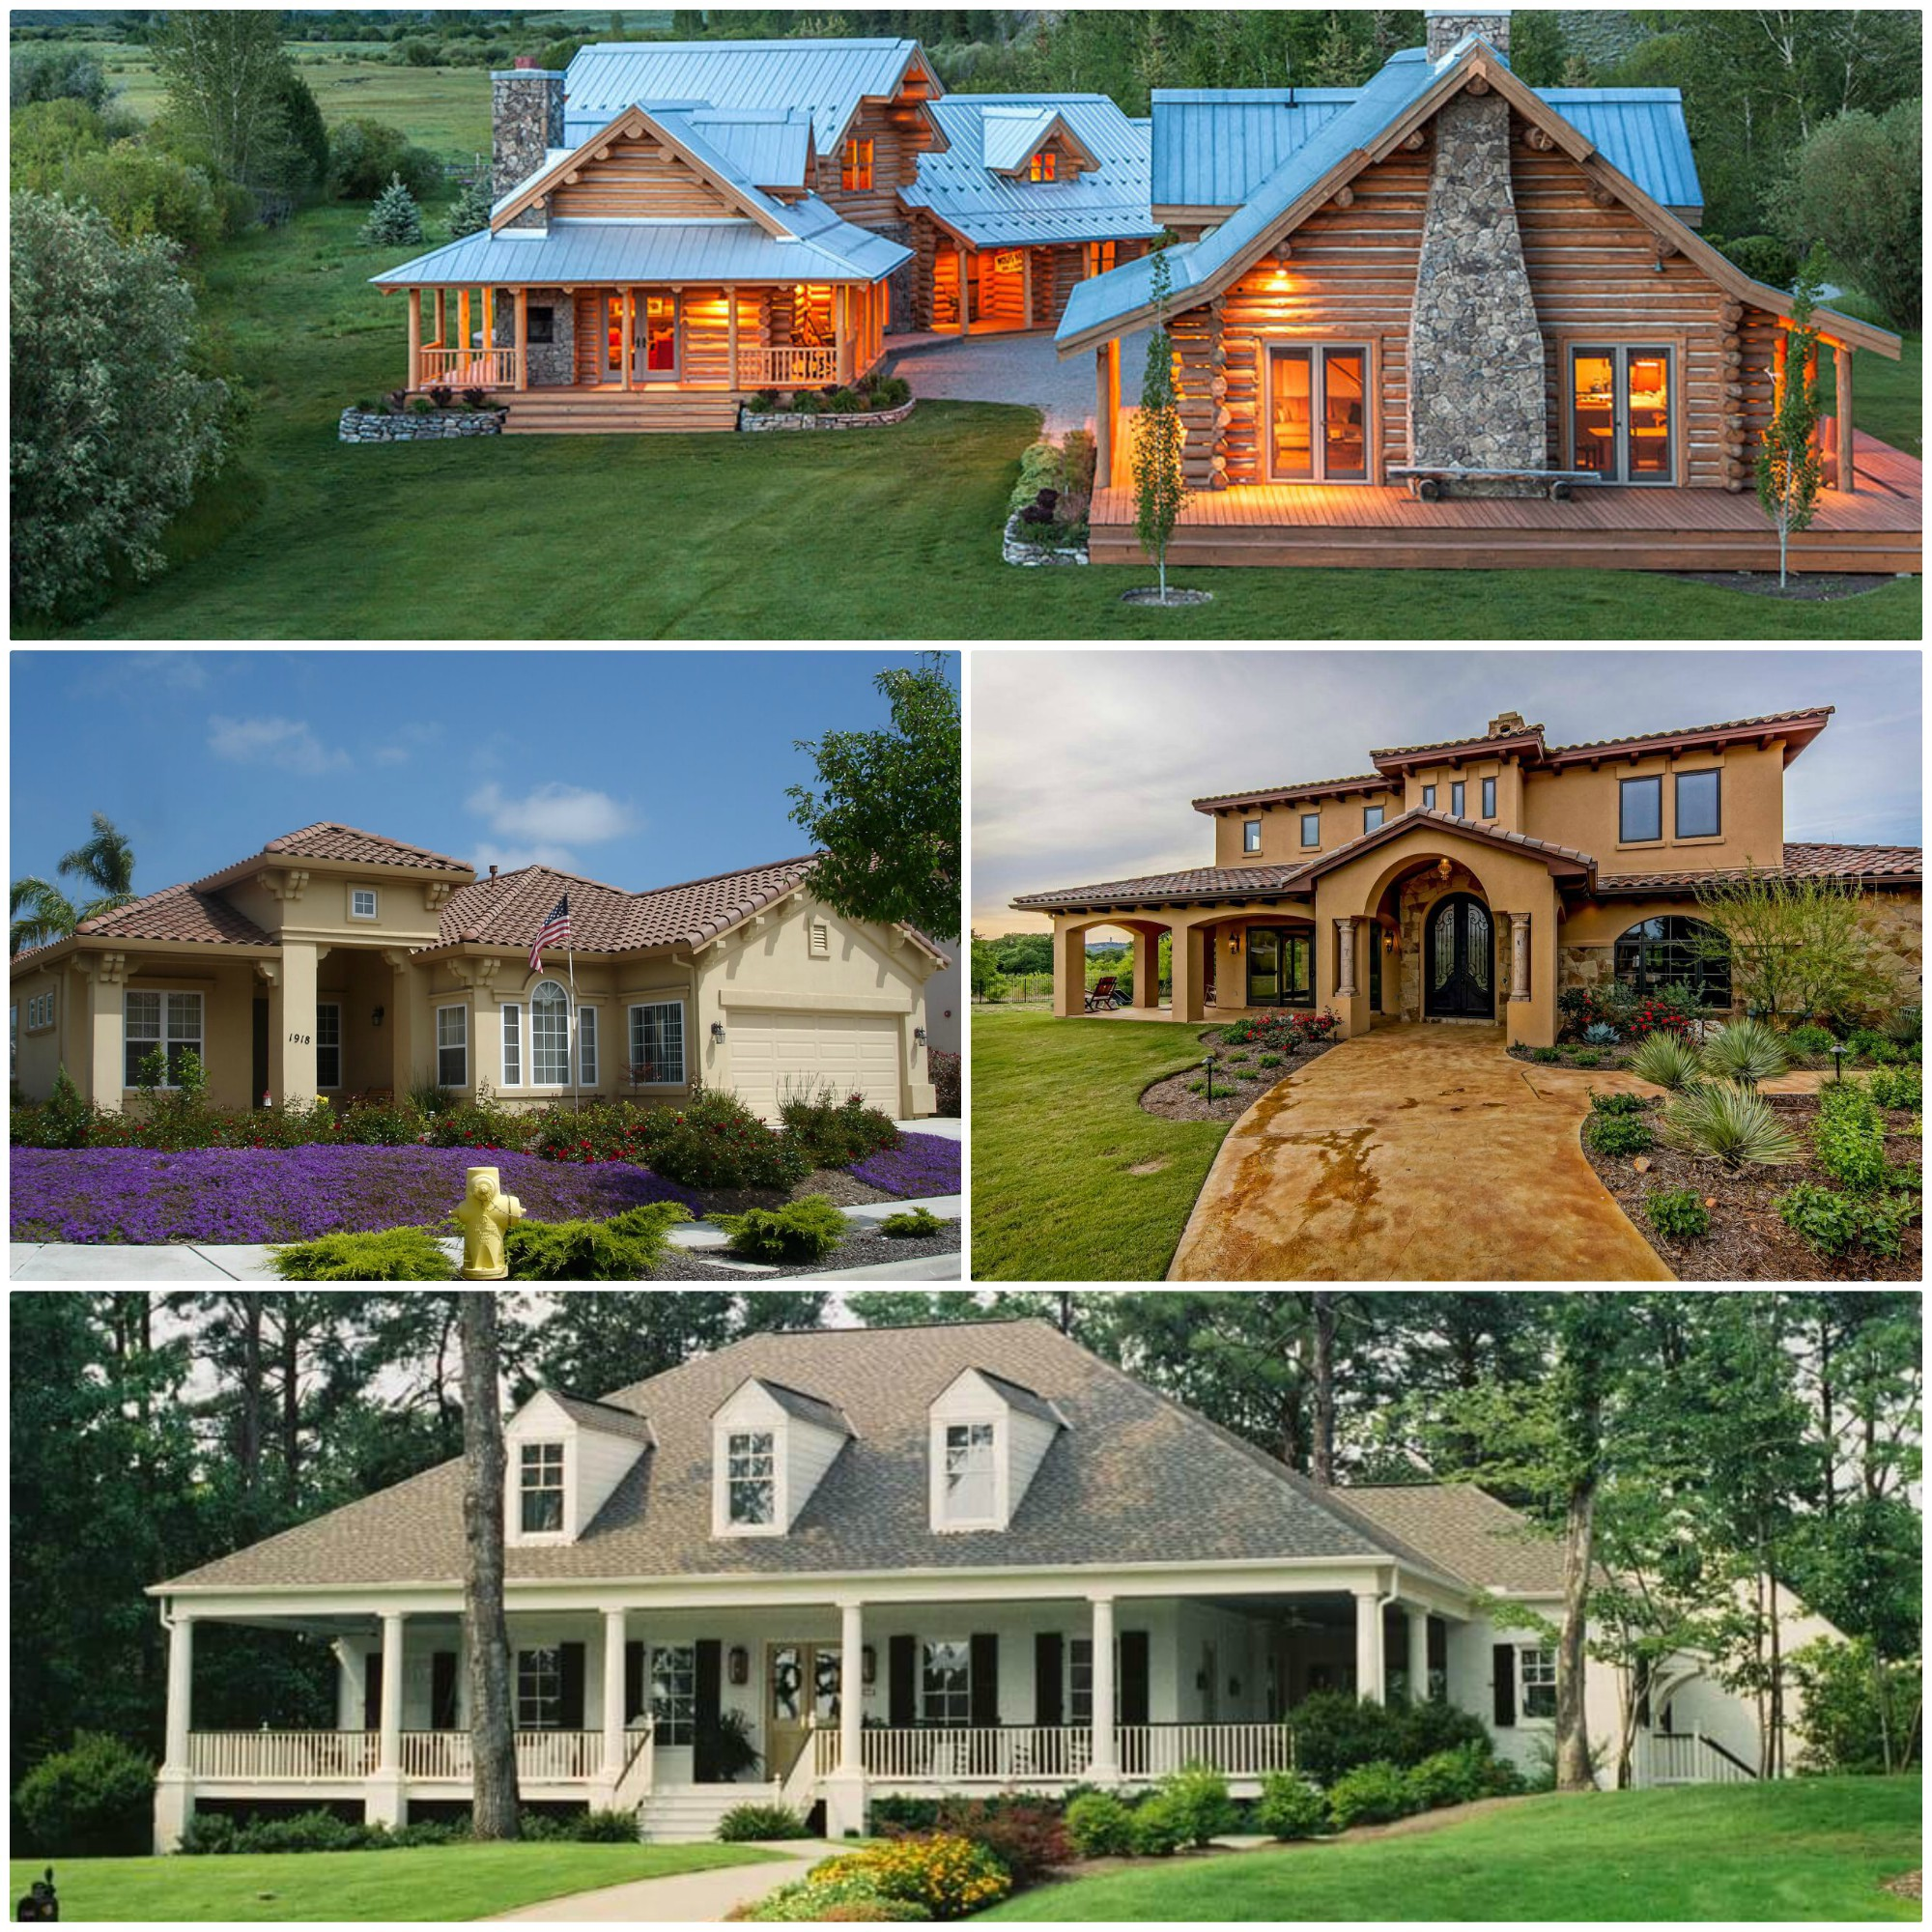 Top 21 Ranch Style Home Architecture Design Ideas ... Ranch House Gl Designs on dormer designs, ranch painting, ranch land, stone building designs, townhouse designs, mansion designs, ranch bathroom, bungalow designs, farmhouse designs, ranch interior design, antique shop designs, ranch art, ranch houses with stone fronts, ranch photography,